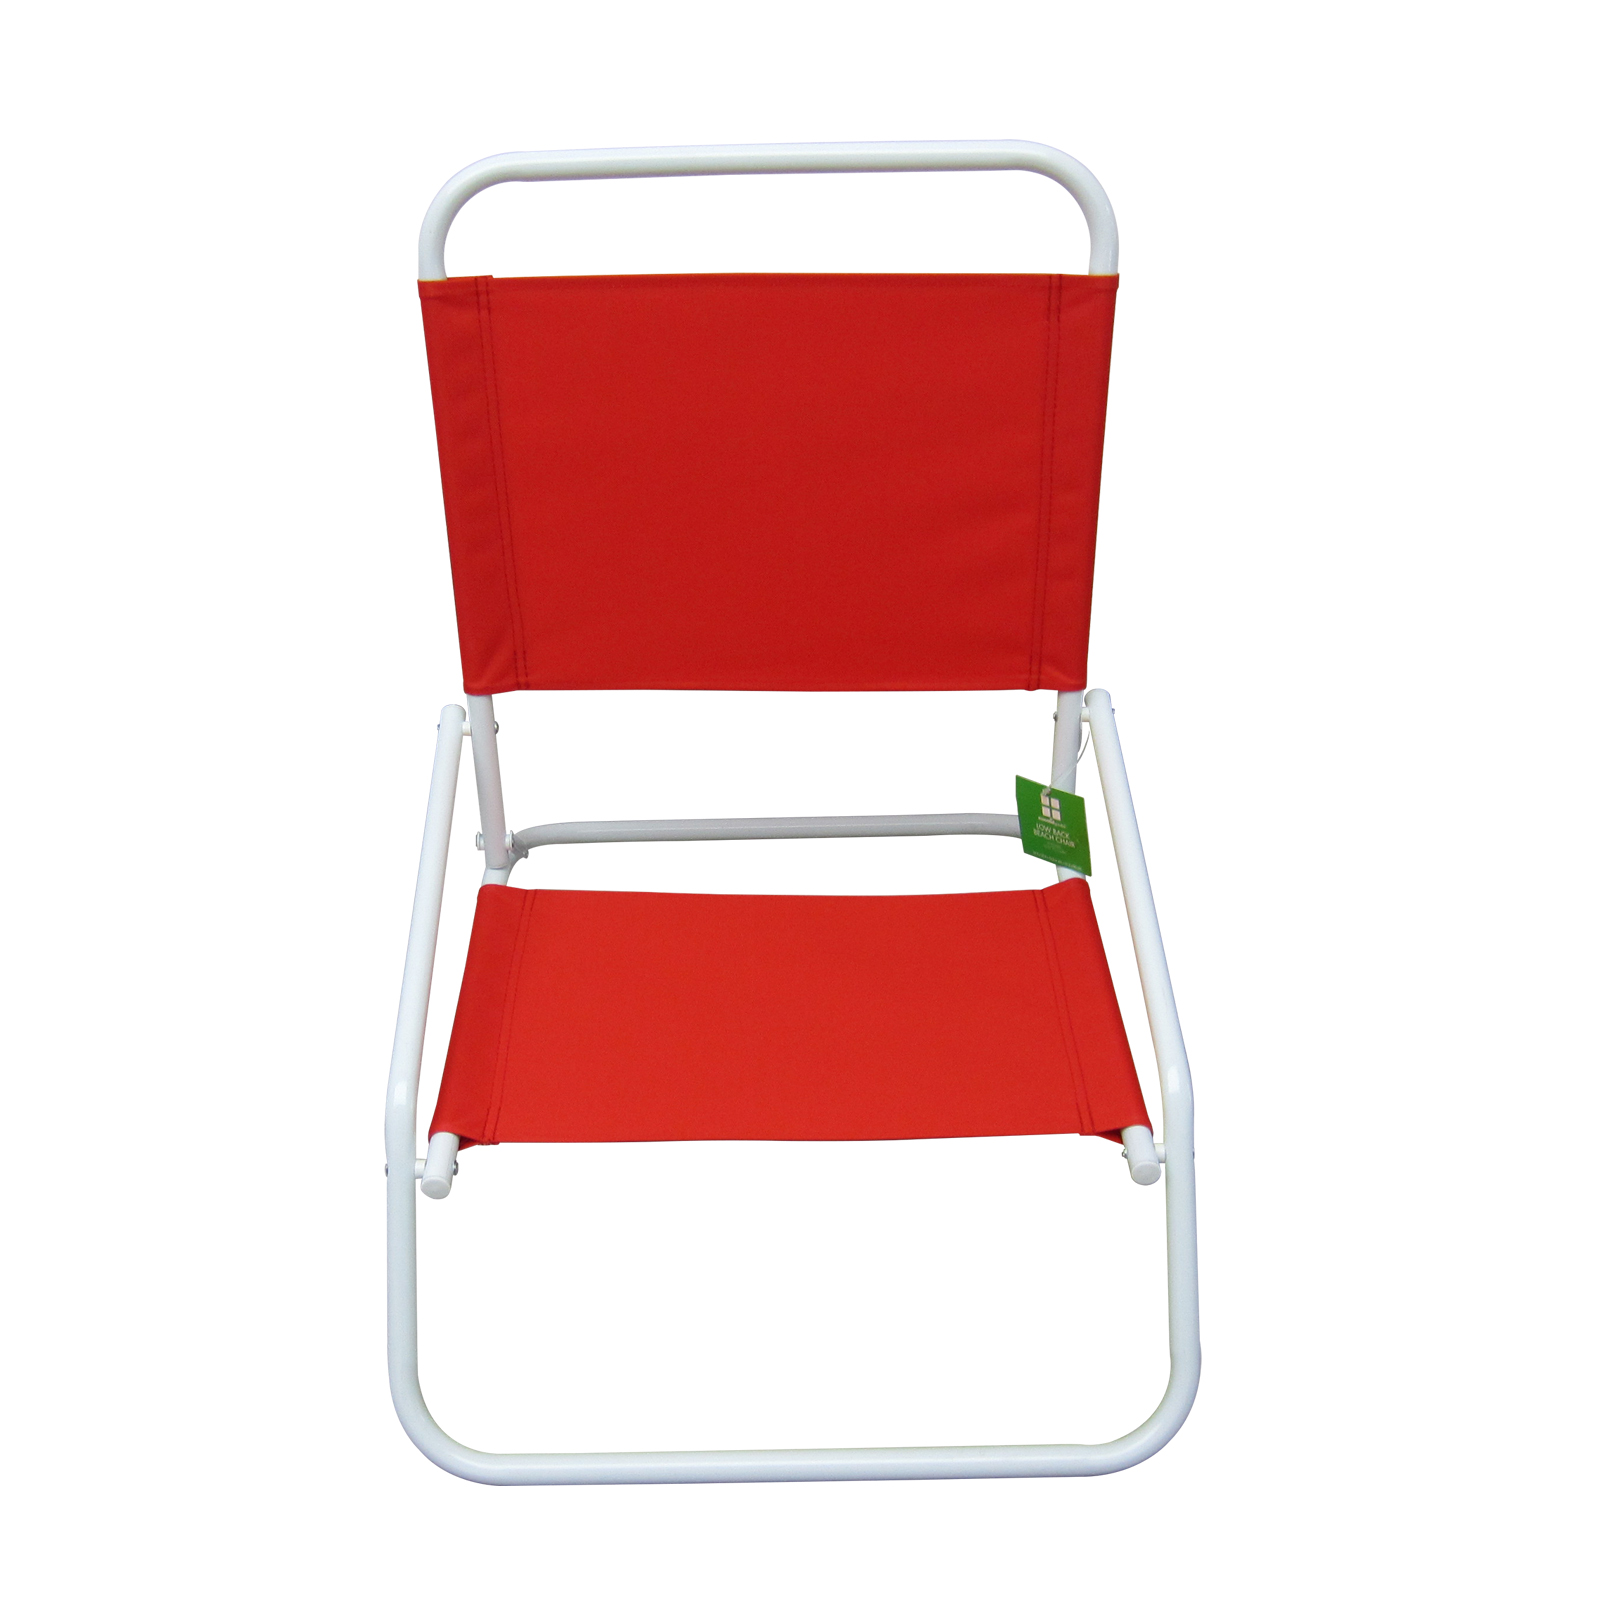 Low Back Lawn Chairs Essential Garden Low Back Beach Chair Solid Red Limited